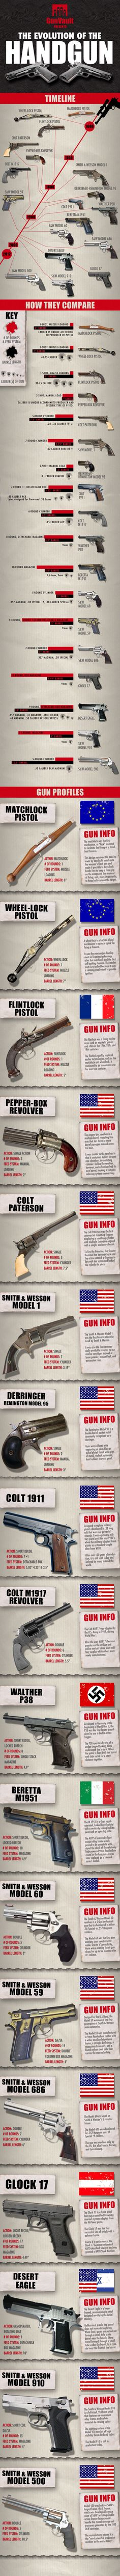 the evolution of a handgun